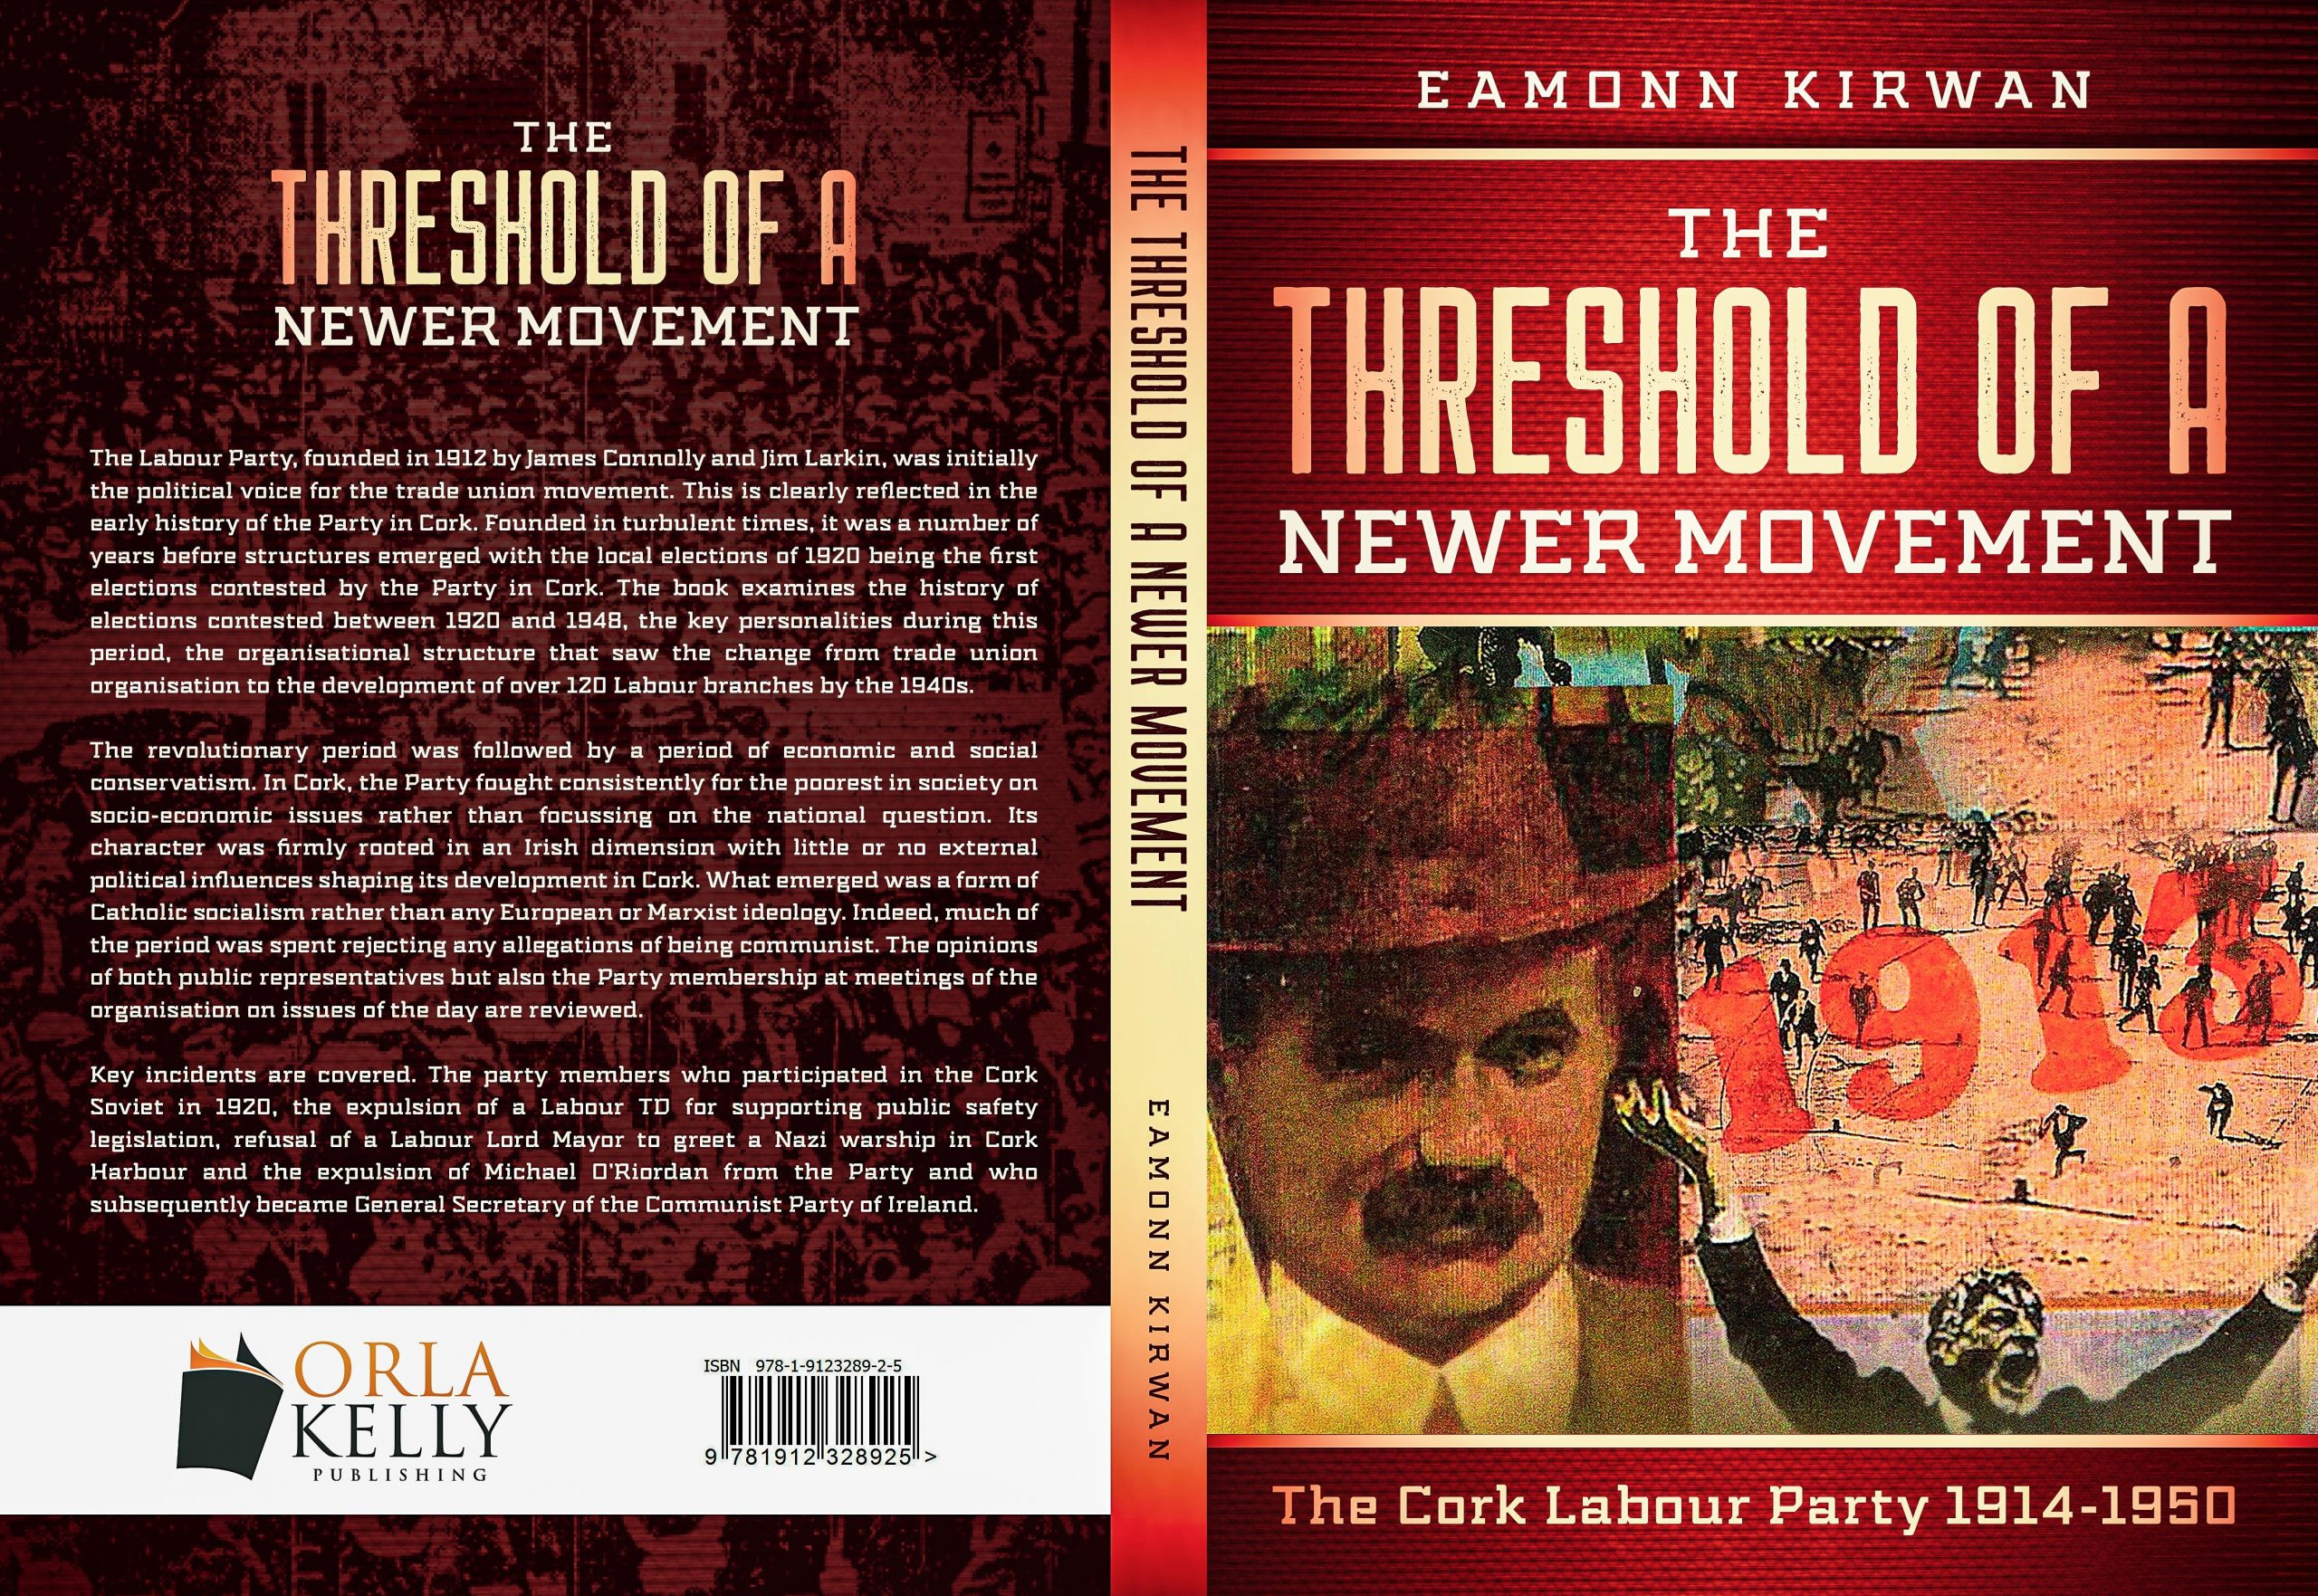 The Threshold of a Newer Movement